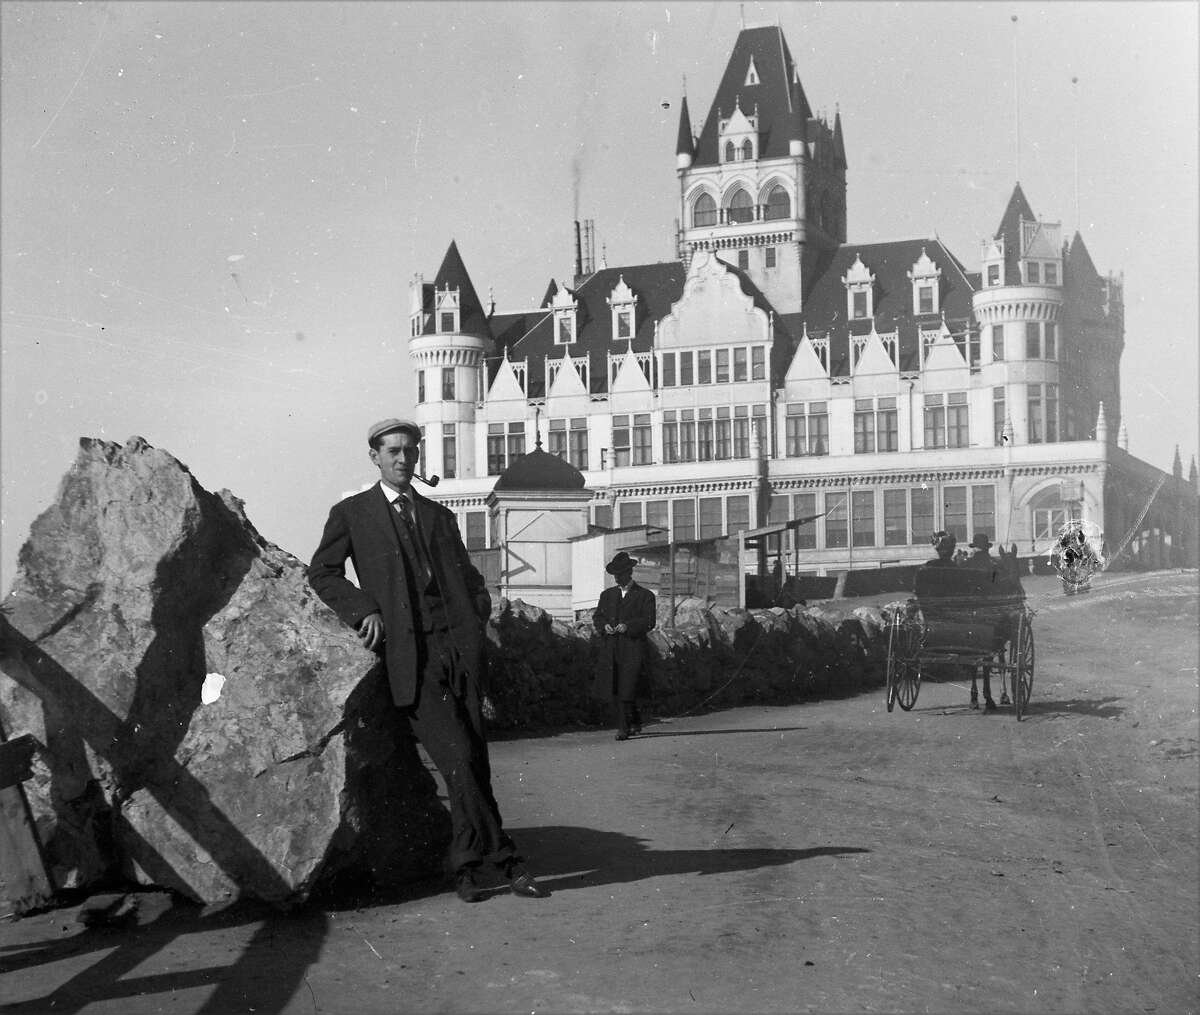 A man stands in front of the Cliff House in 1907.